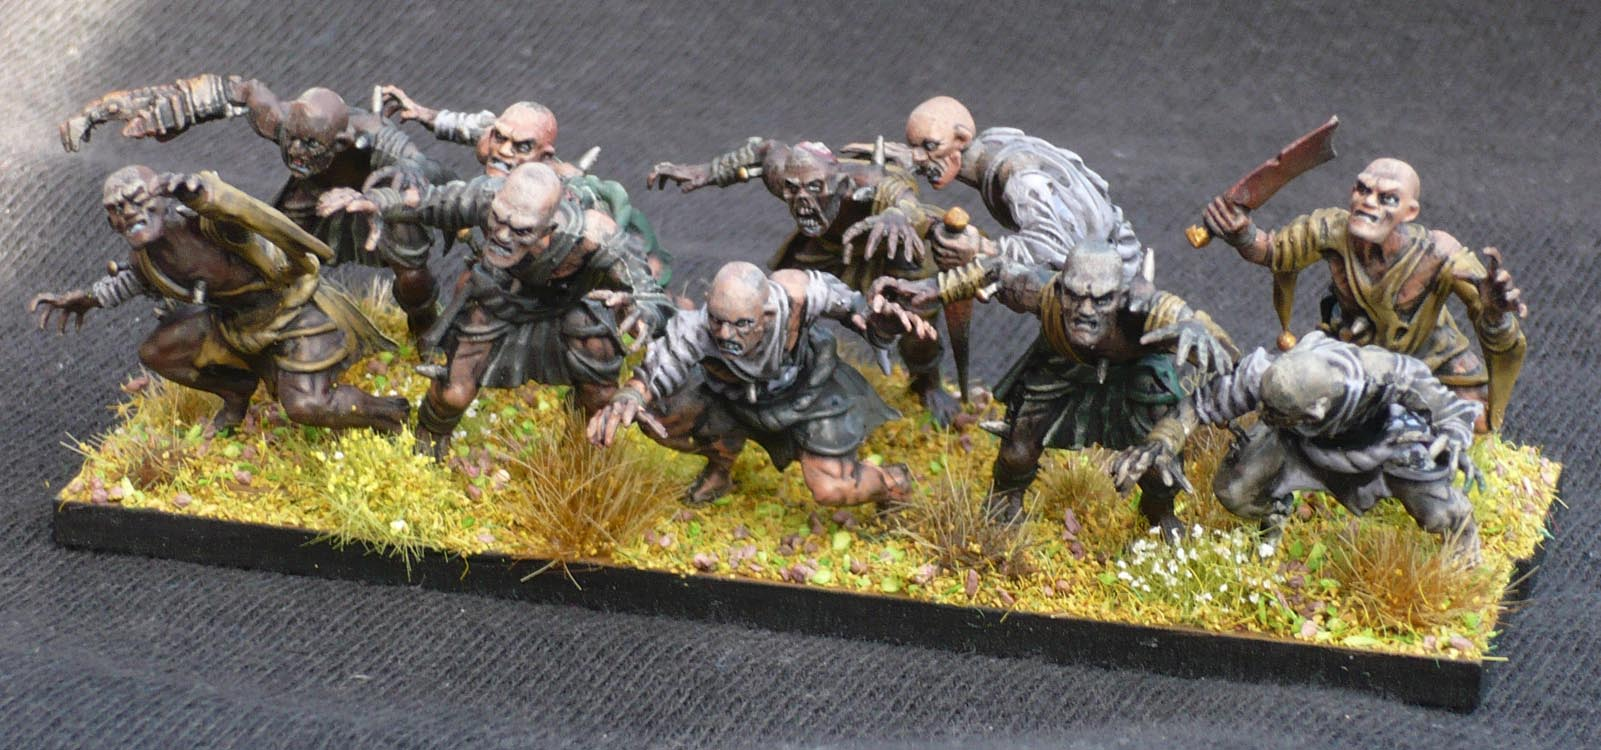 Basing Miniatures Before Or After Painting